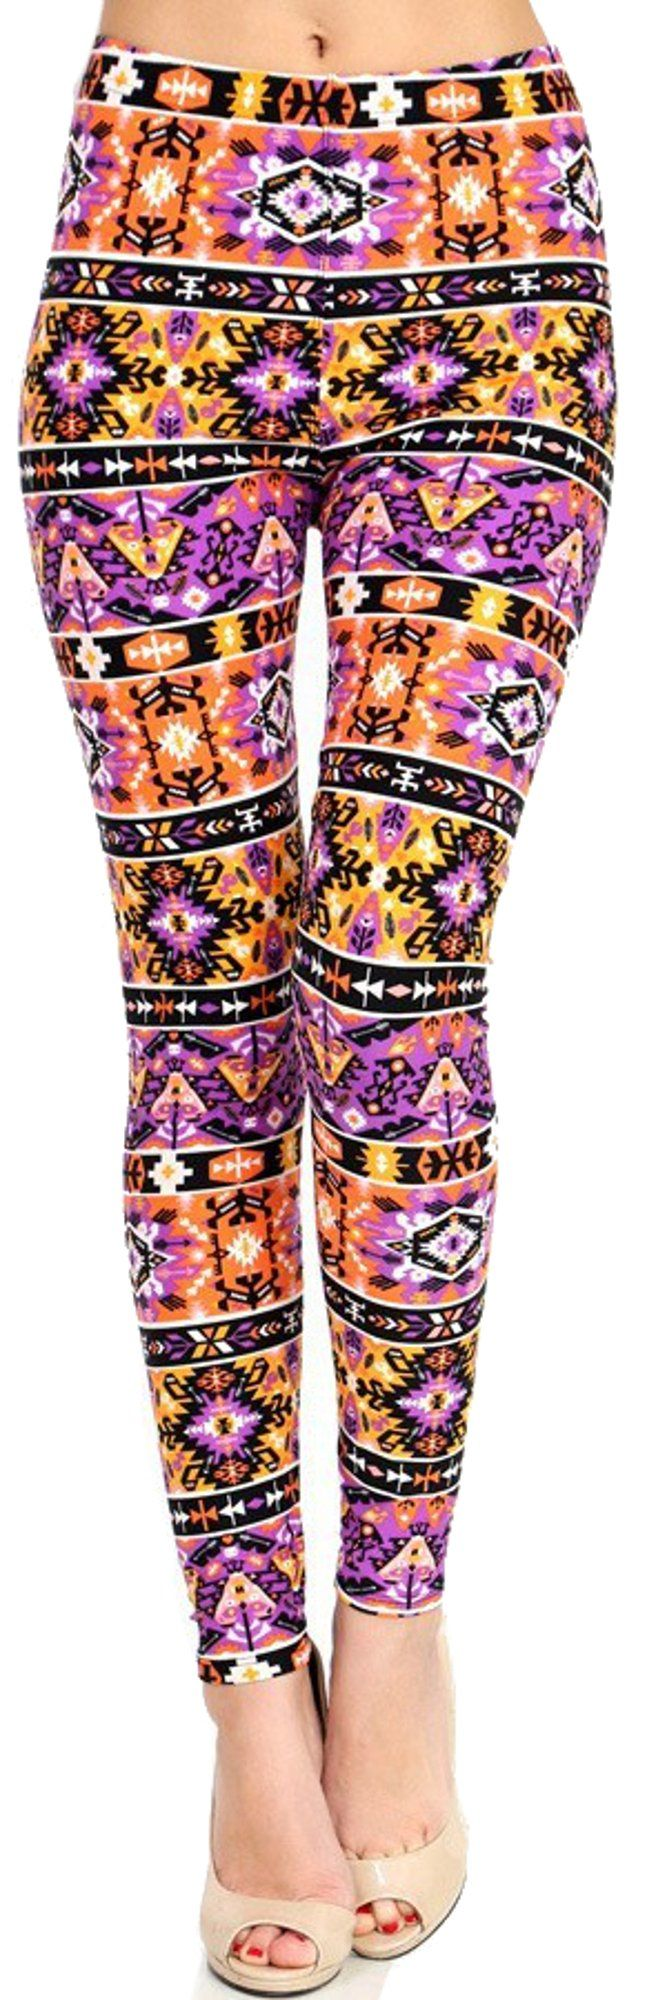 Lush Moda Extra Soft Leggings with Designs- Variety of Prints - Pink Gold Ornament